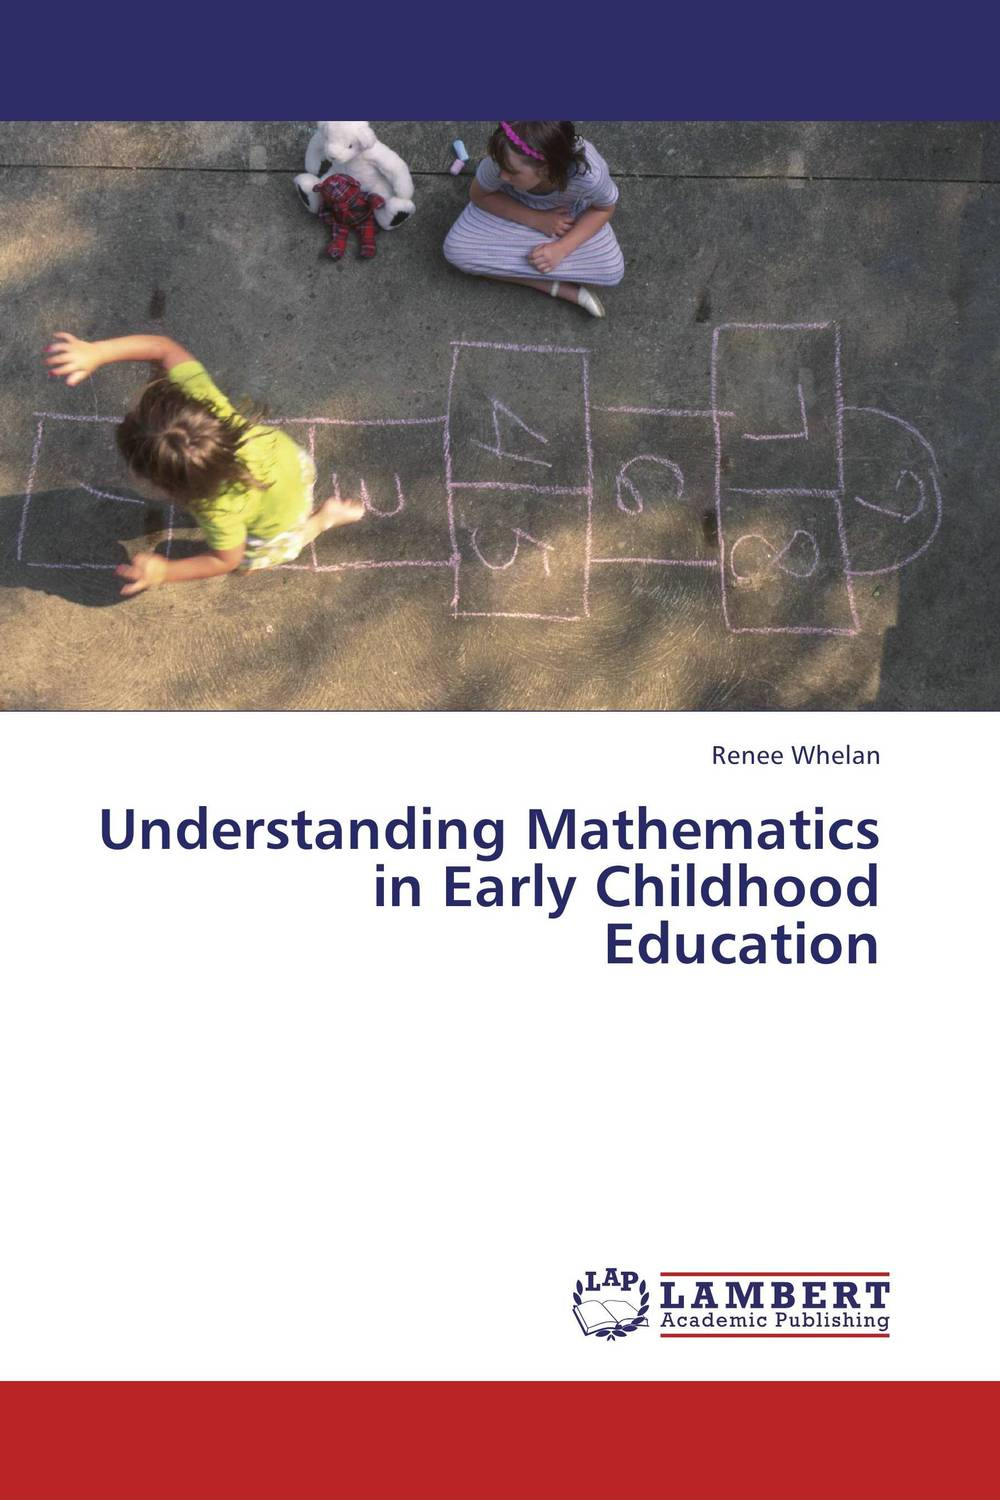 Understanding Mathematics in Early Childhood Education